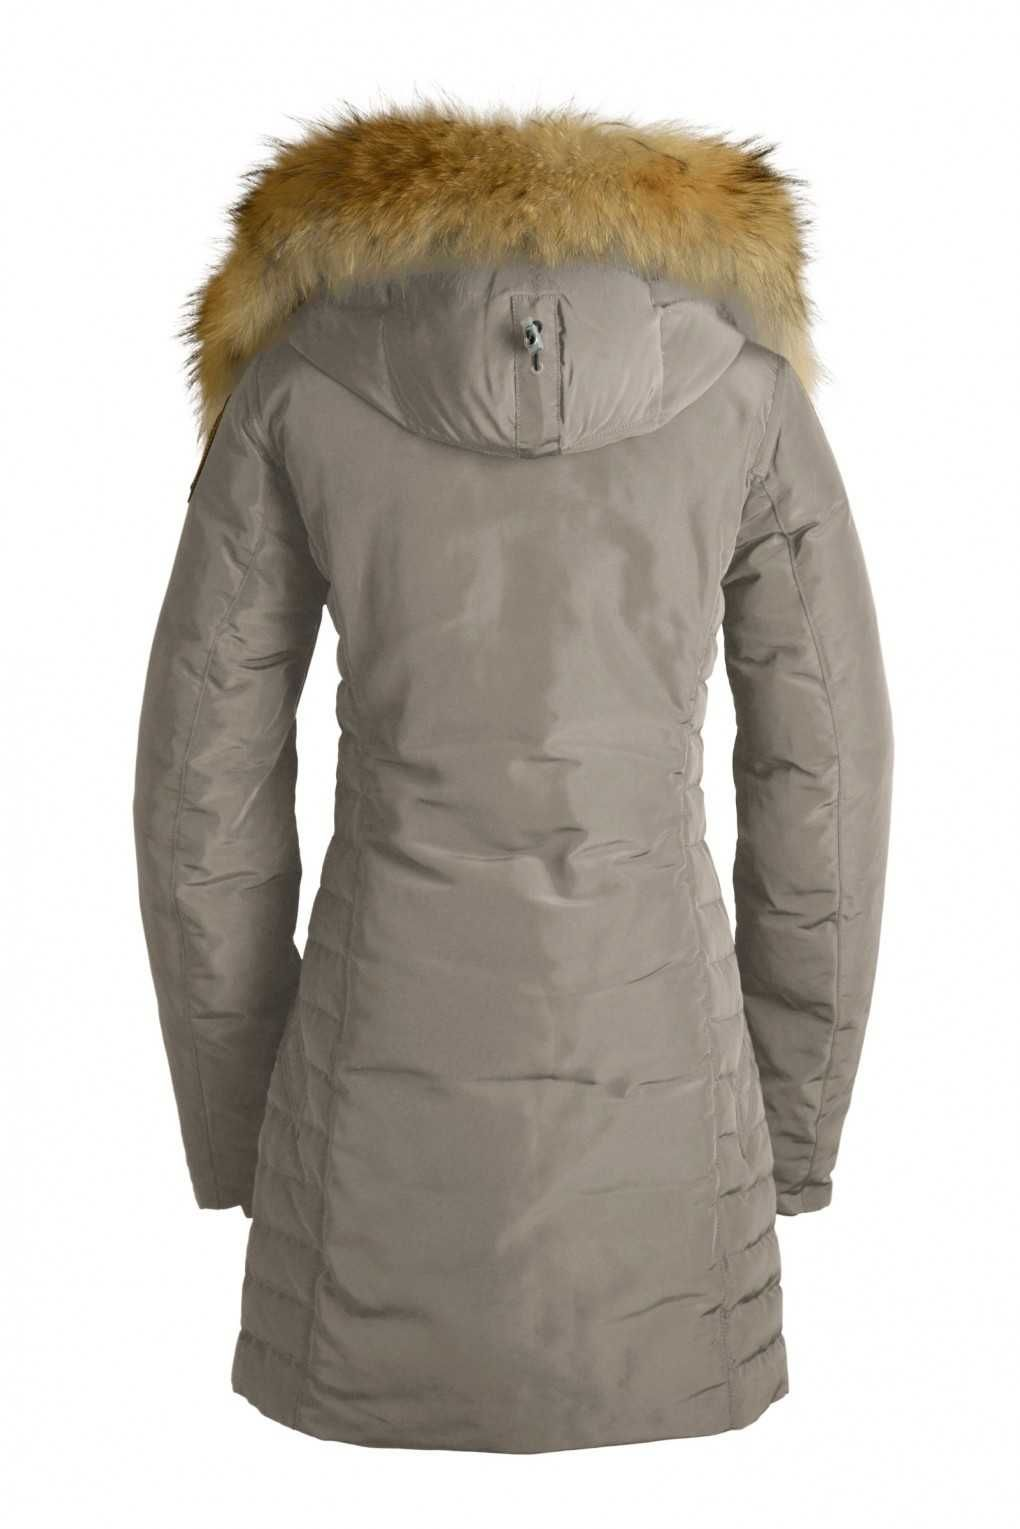 Parajumpers Jacket Online Factory Outlet,Big Discount From Original Parajumper Jacket Canada UK! Wholesale Parajumpers Online Store! best quality